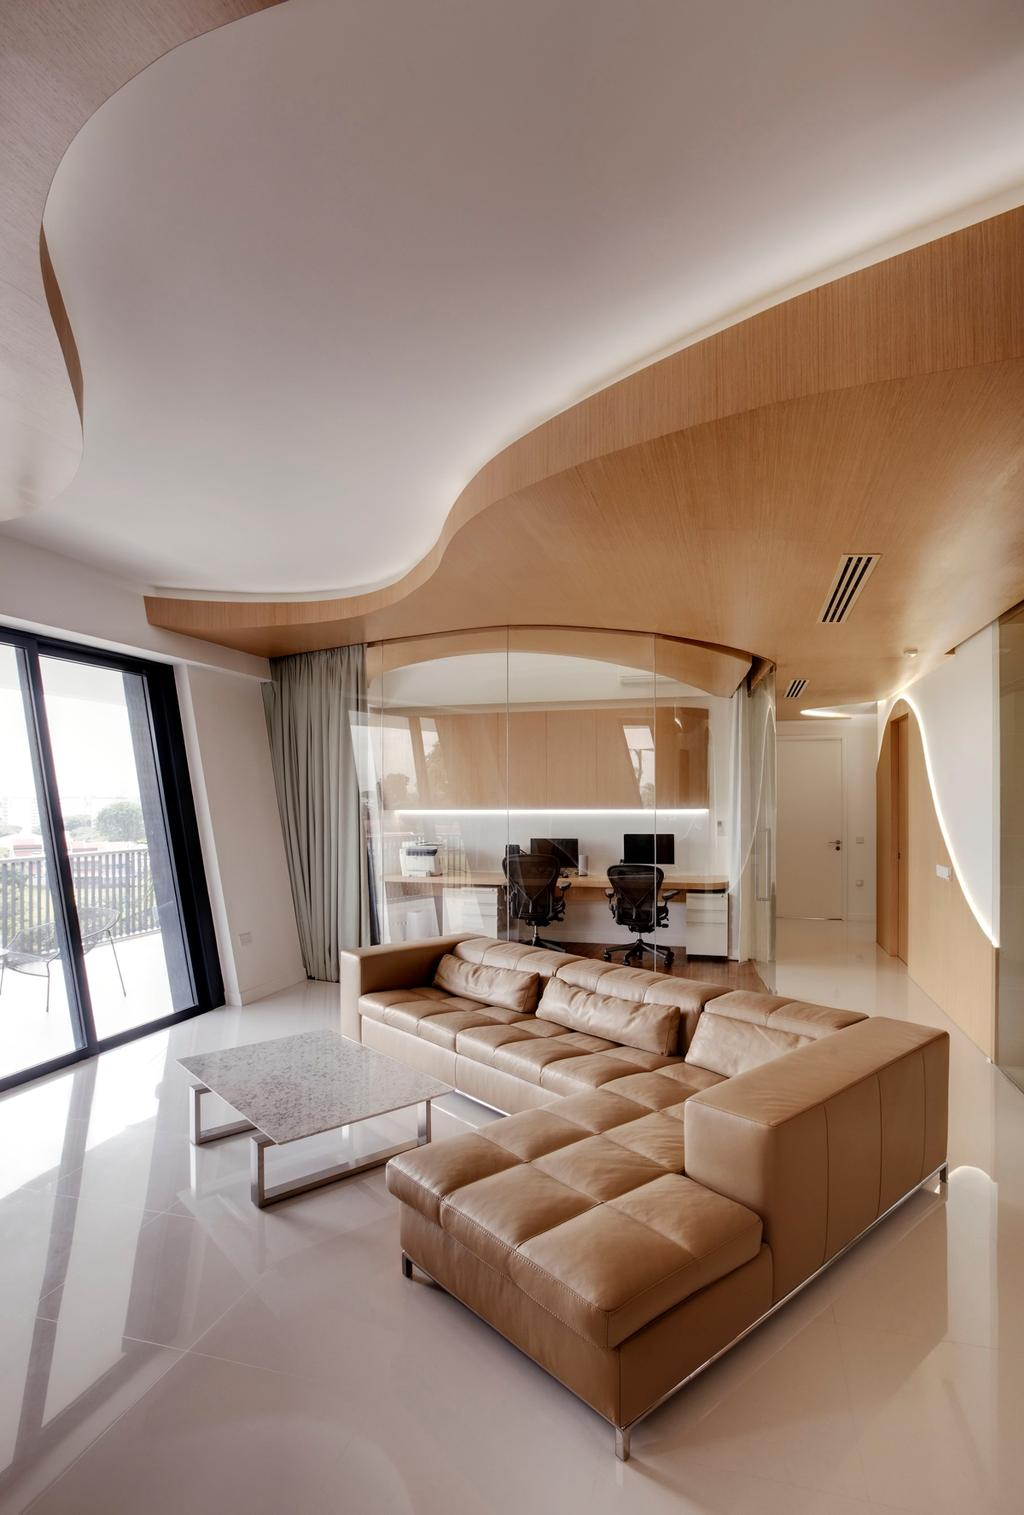 Contemporary, Condo, Living Room, D'Leedon, Architect, Lim Ai Tiong (LATO) Architects, Couch, Furniture, Indoors, Interior Design